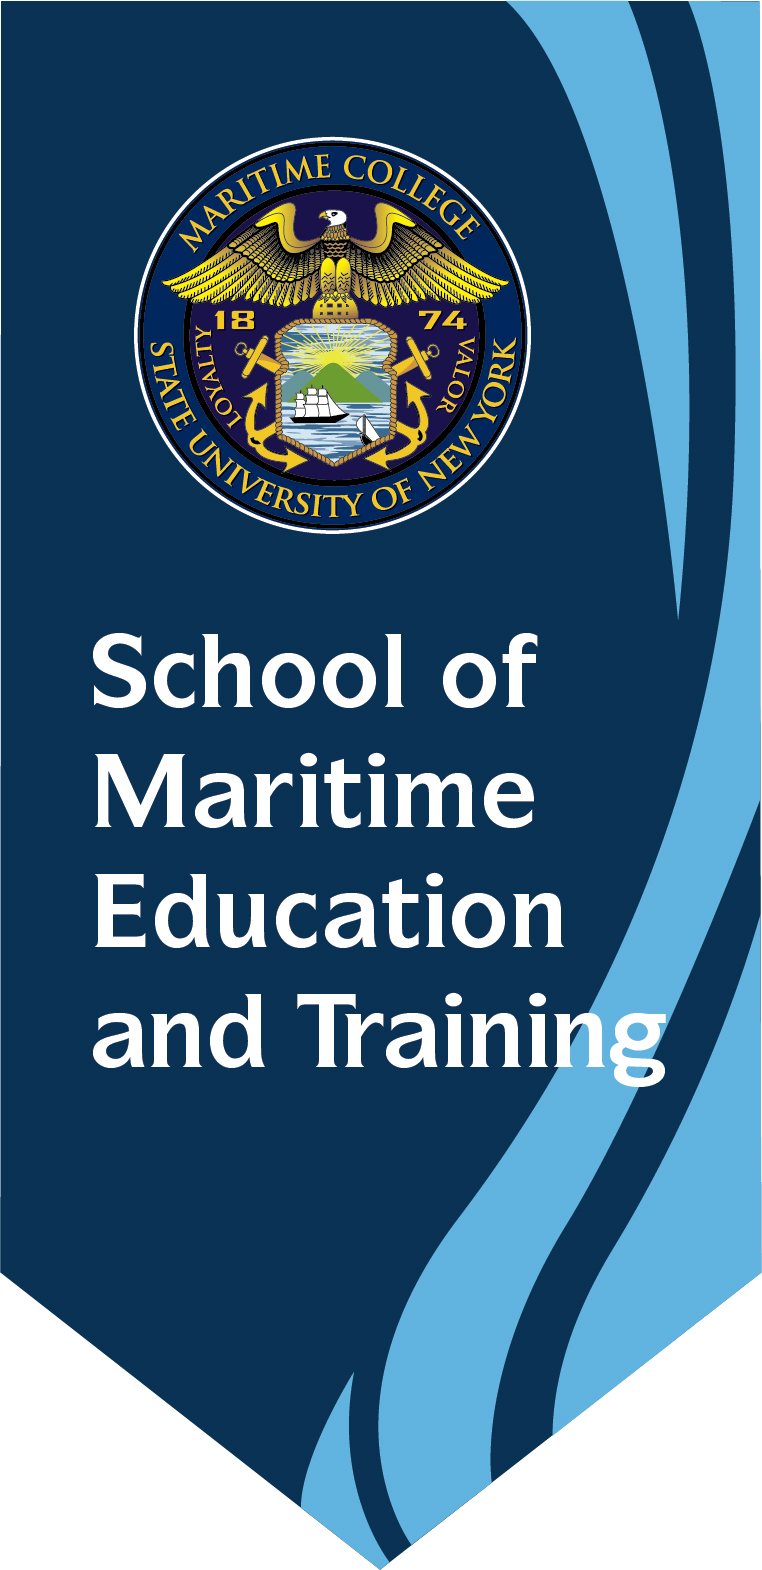 School of Maritime Education and Training